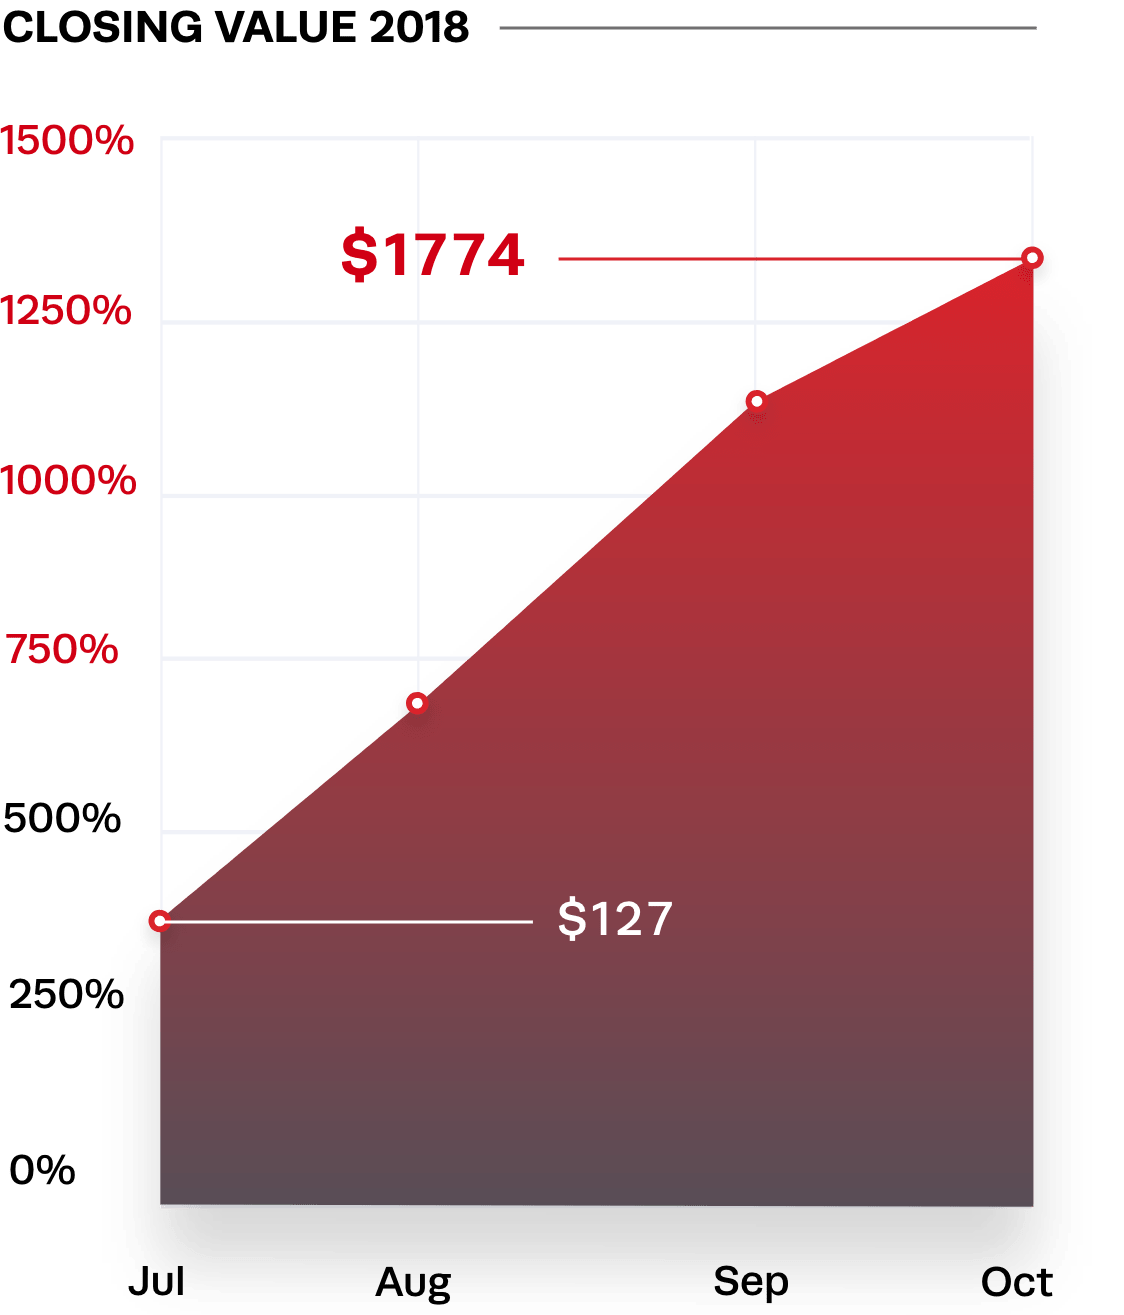 A graph showing an increase in average closing value.